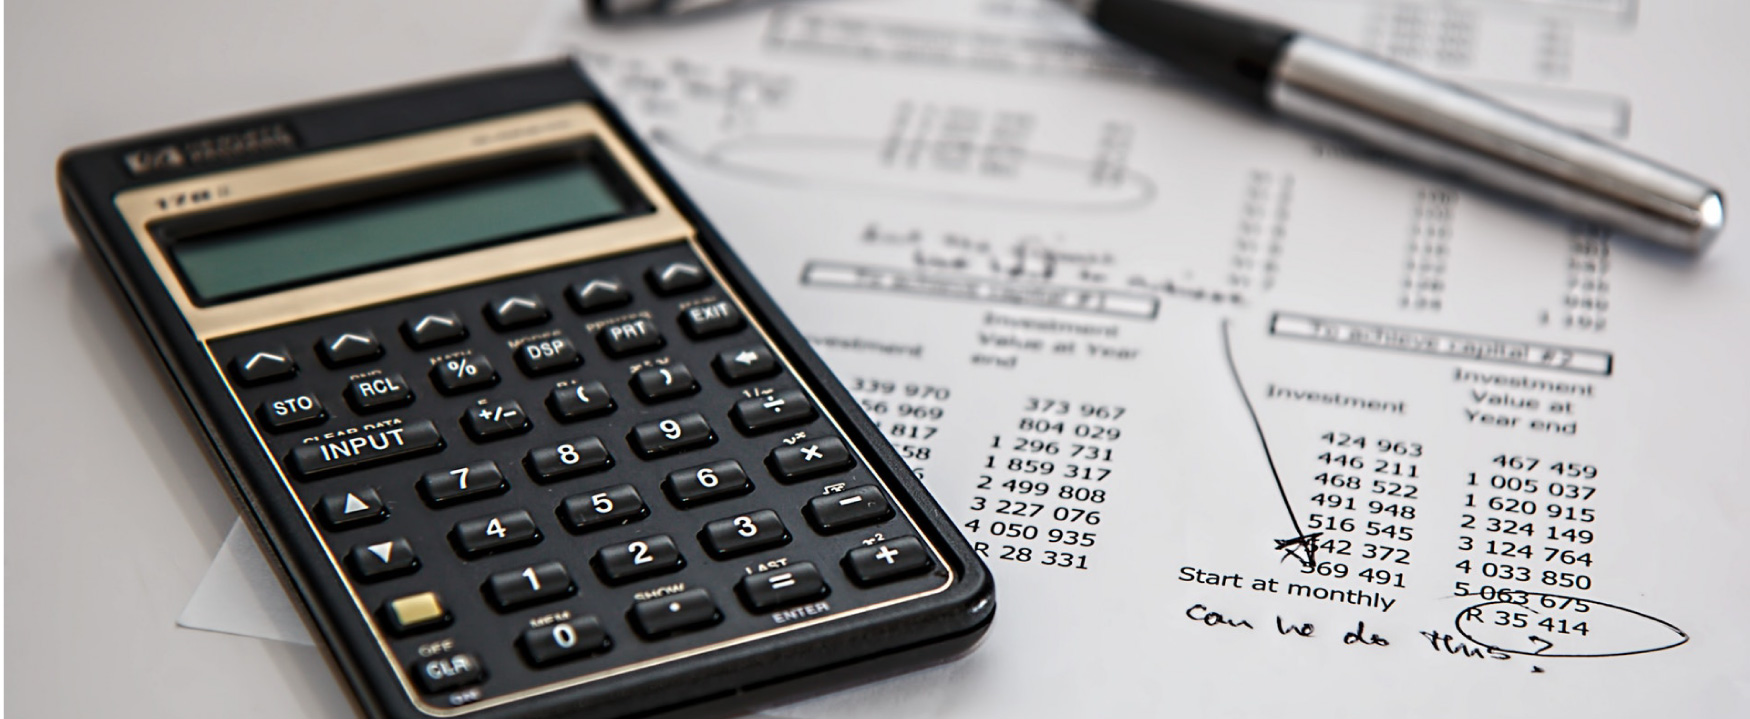 """A calculator sits on a sheet of paper.  On the paper are investment and return amounts, with a handwritten note that asks, """"Can we do this?"""""""